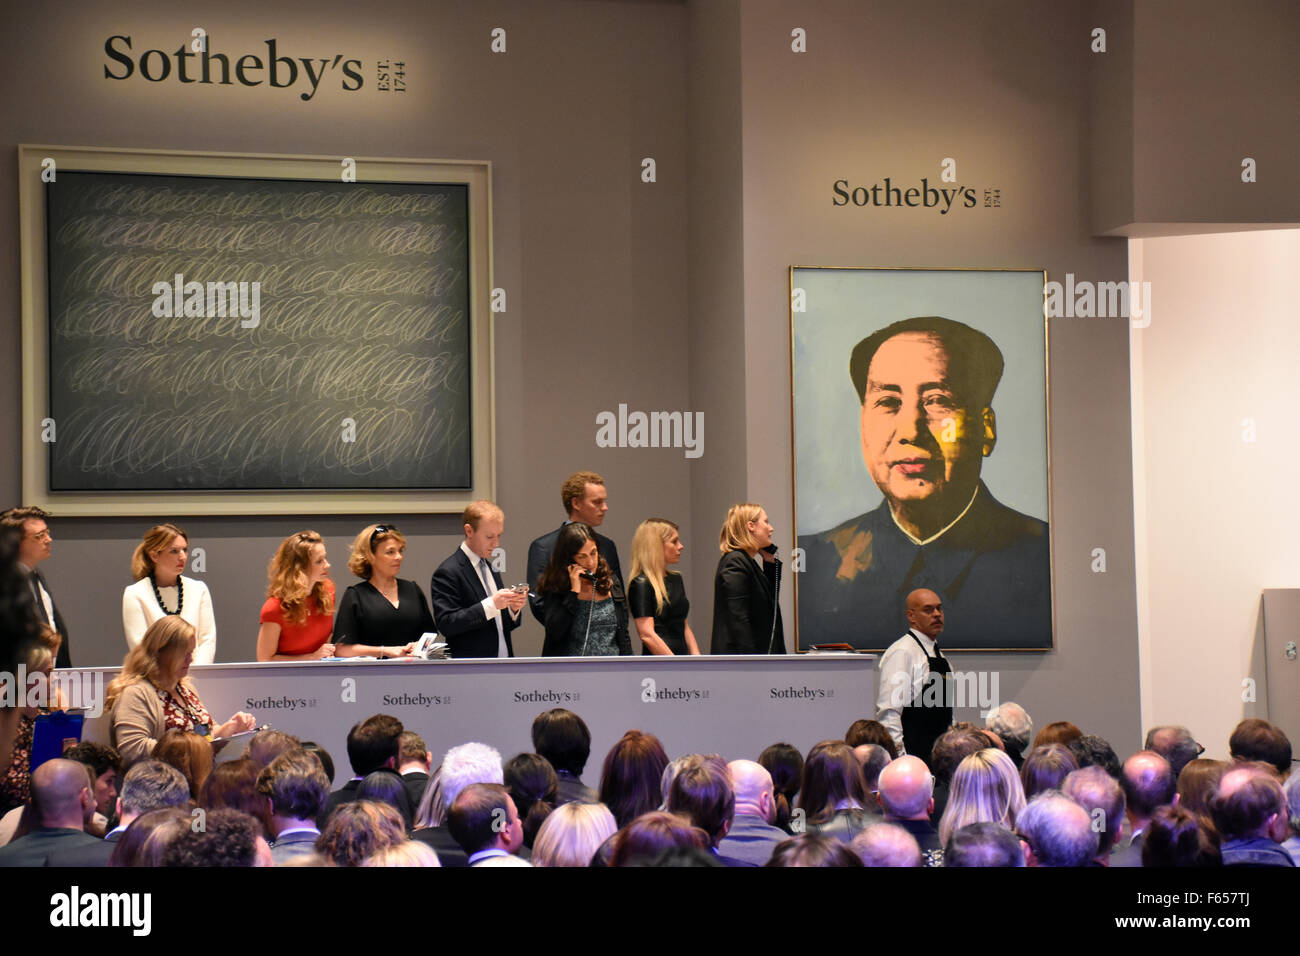 New york usa 11th nov 2015 telephone bidders stand in front of the - New York Usa 11th Nov 2015 Telephone Bidders Stand In Front Of The Two Most Expensive Pictures Of The Evening Untitled By Cy Twombly From 1968 L